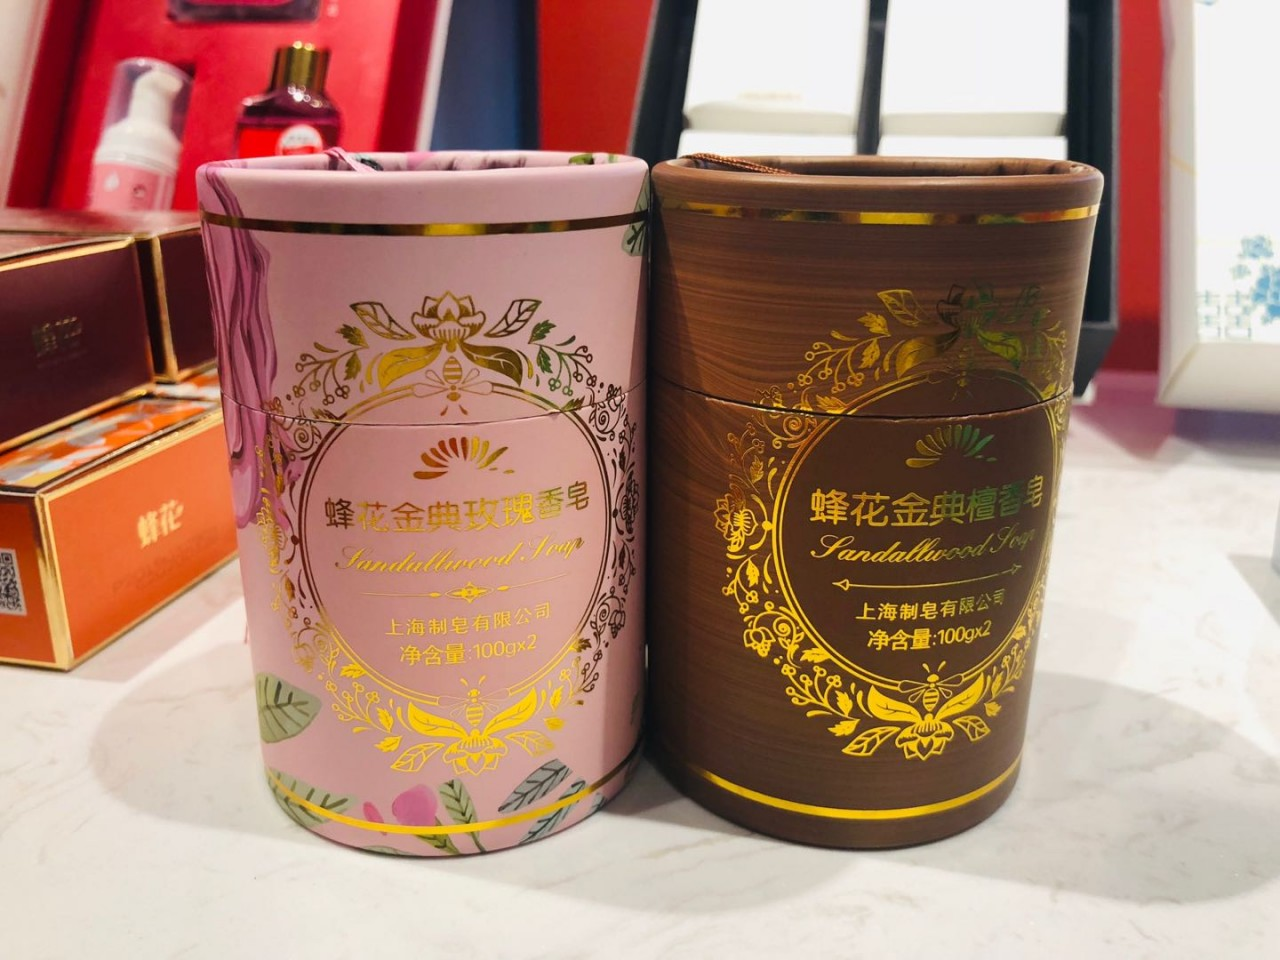 The Shanghai Soap Co. has upgraded the packaging and functions of its soap.